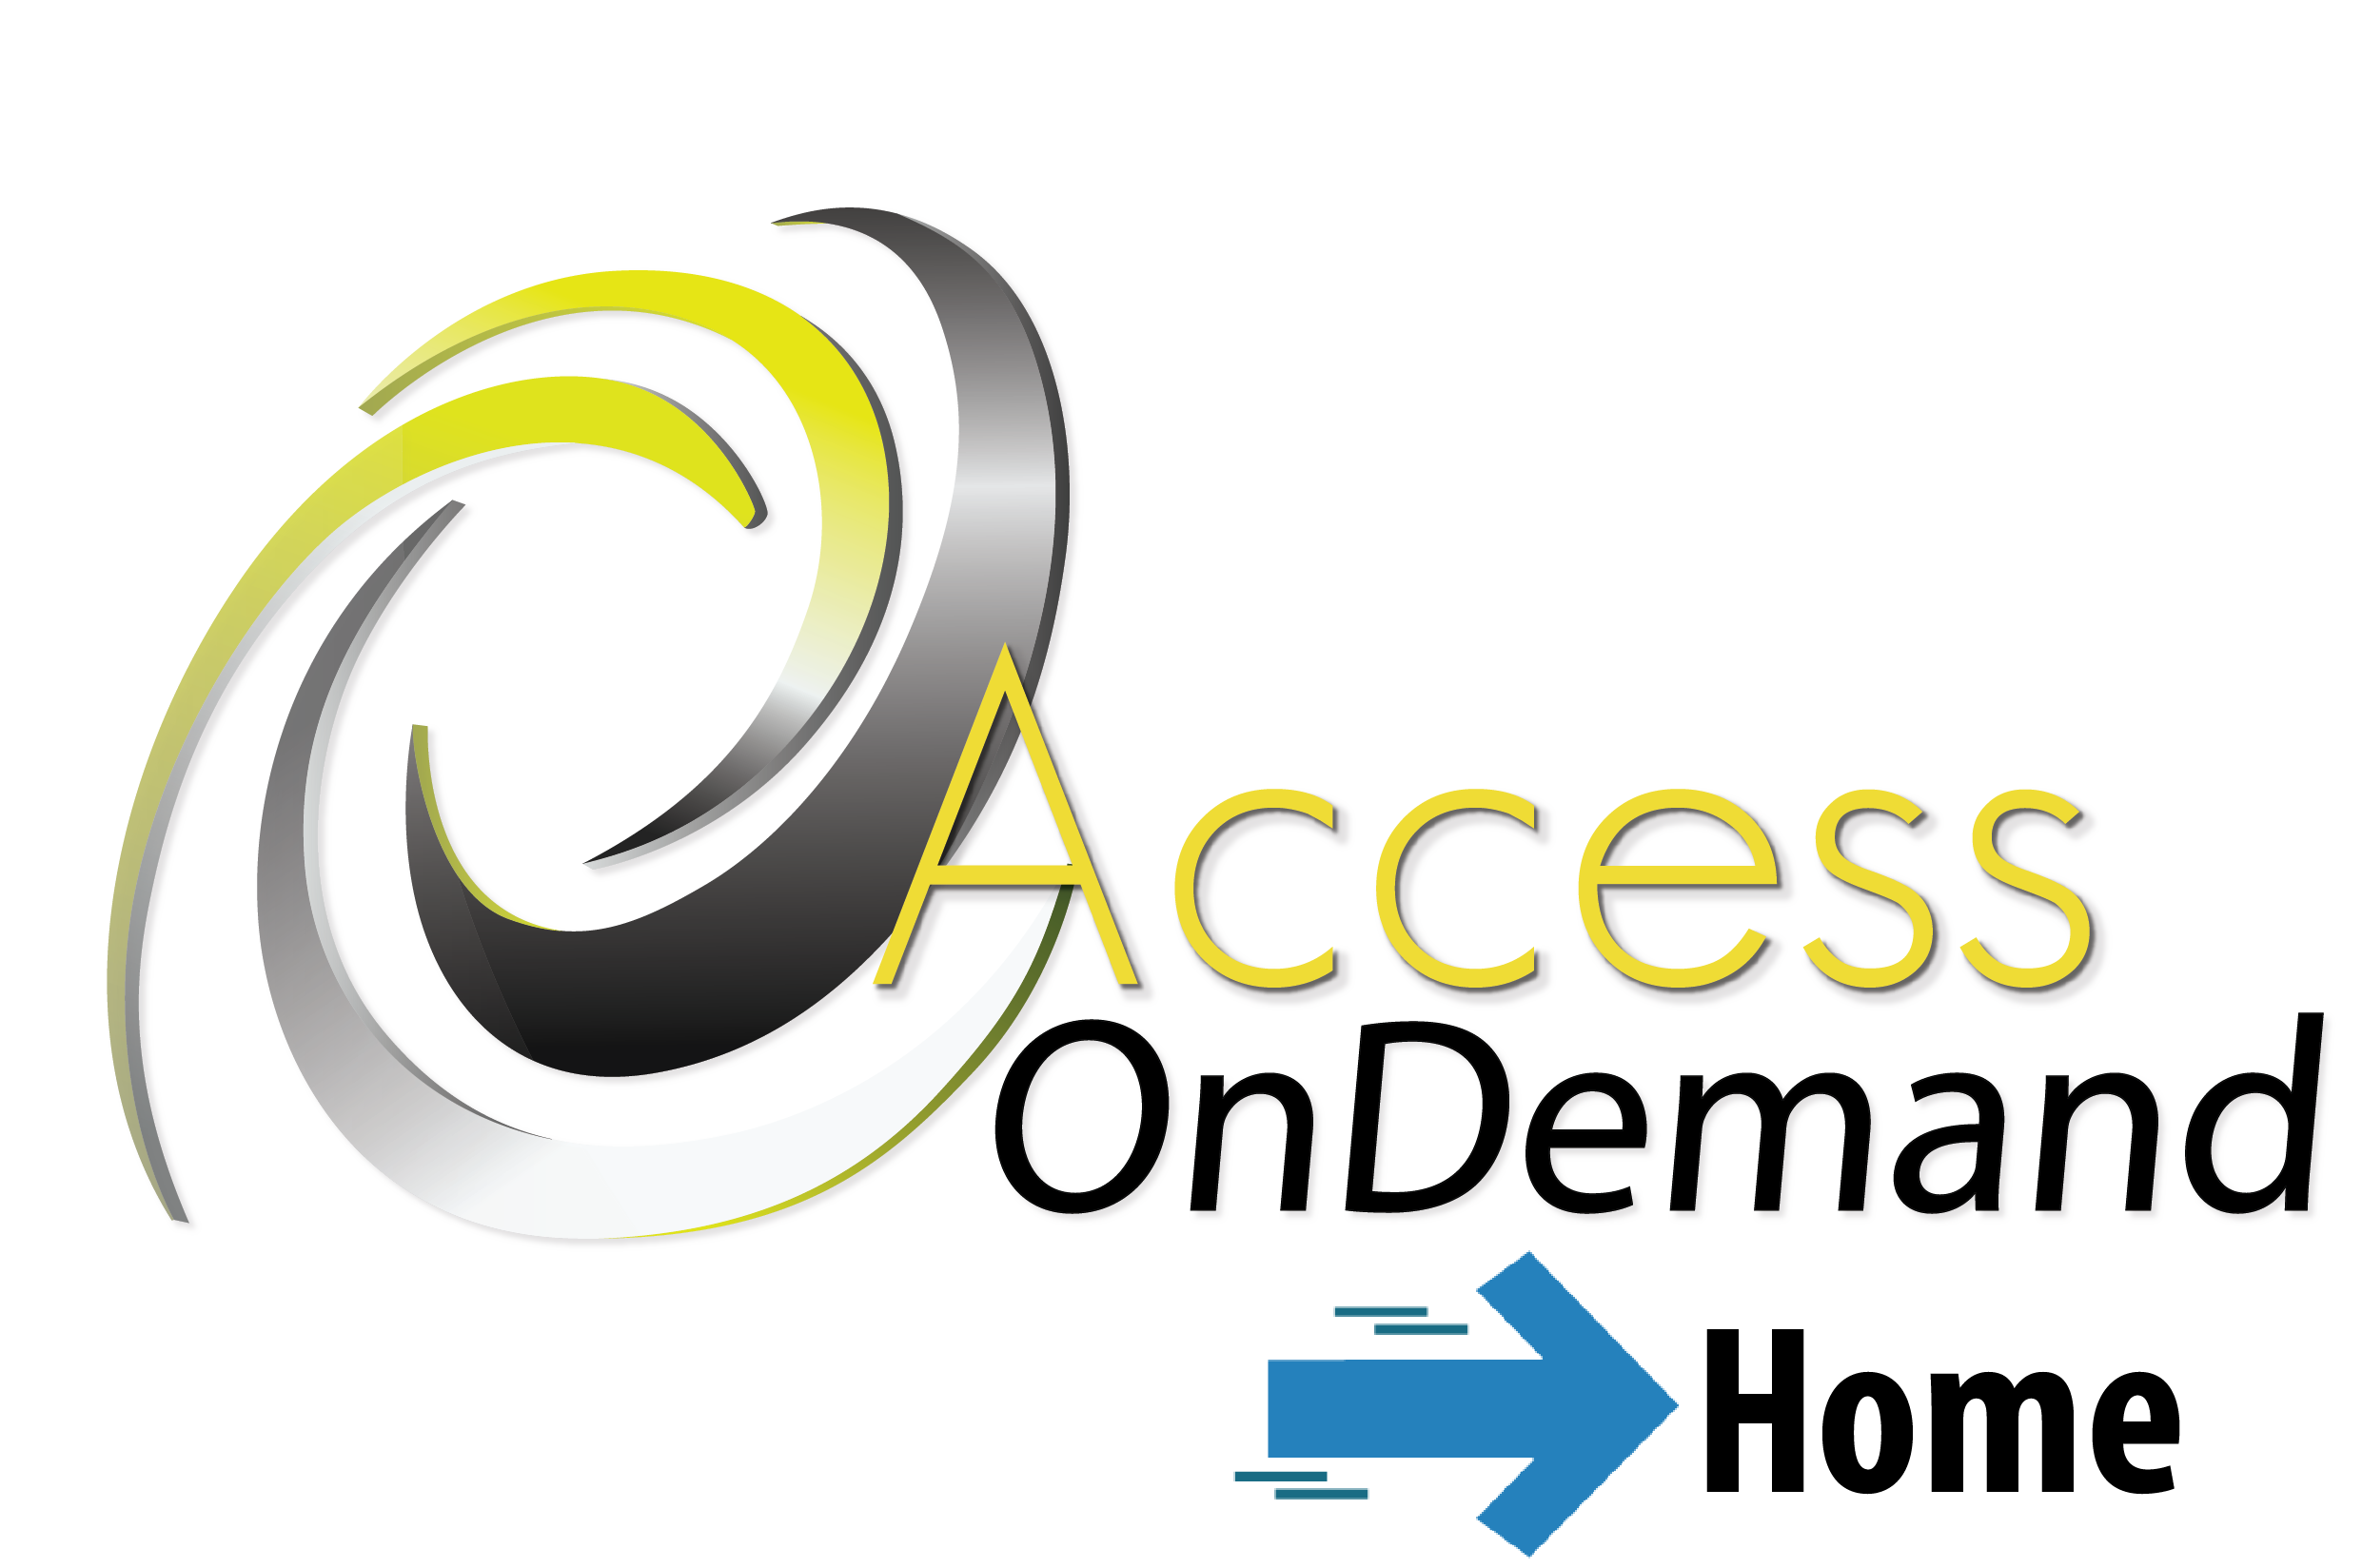 Access OnDemand by FutureTech Auto Logo